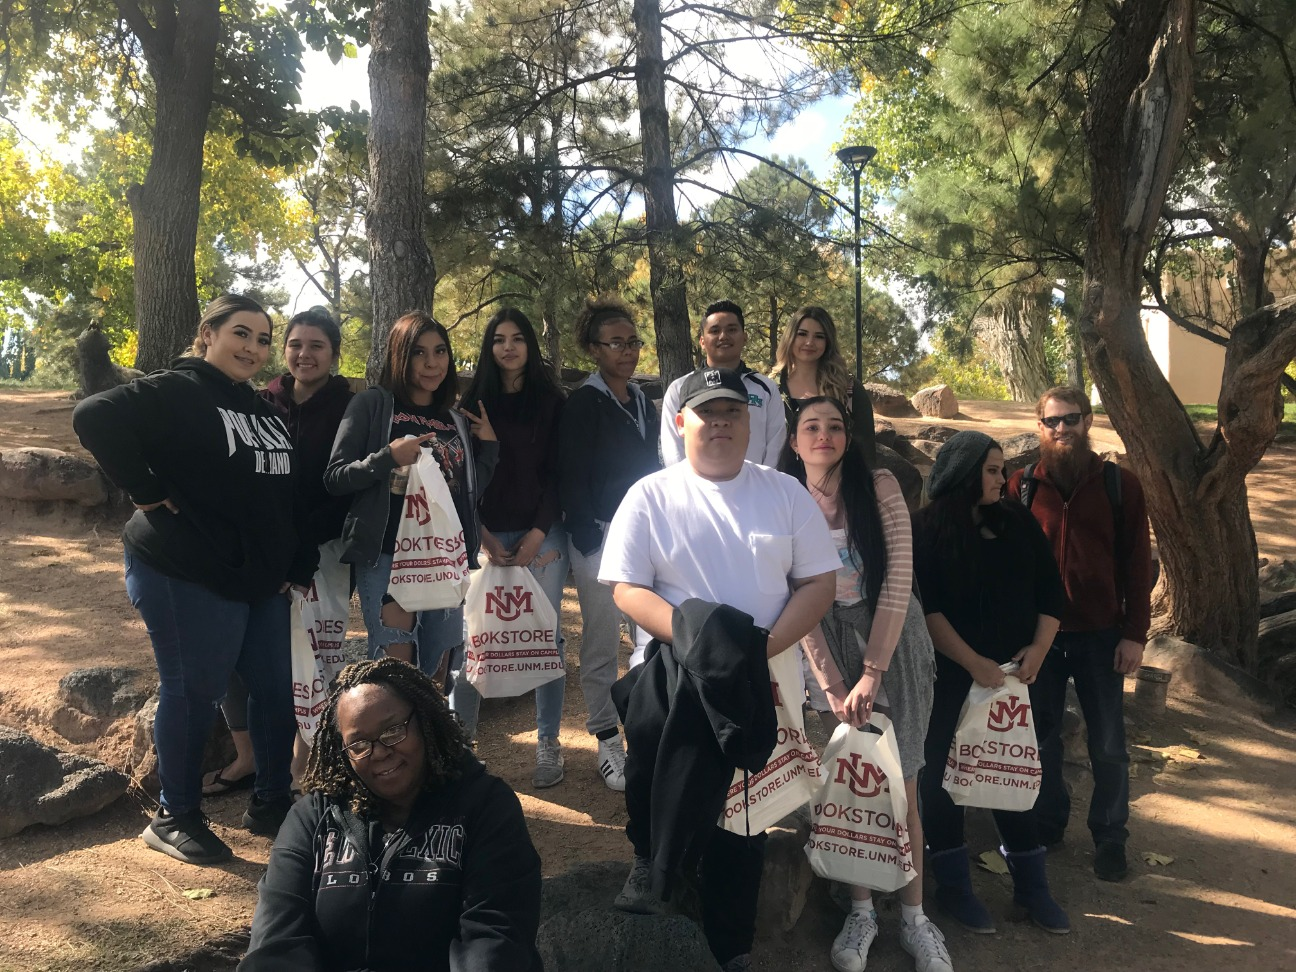 Students standing outside with UNM Bookstore bags